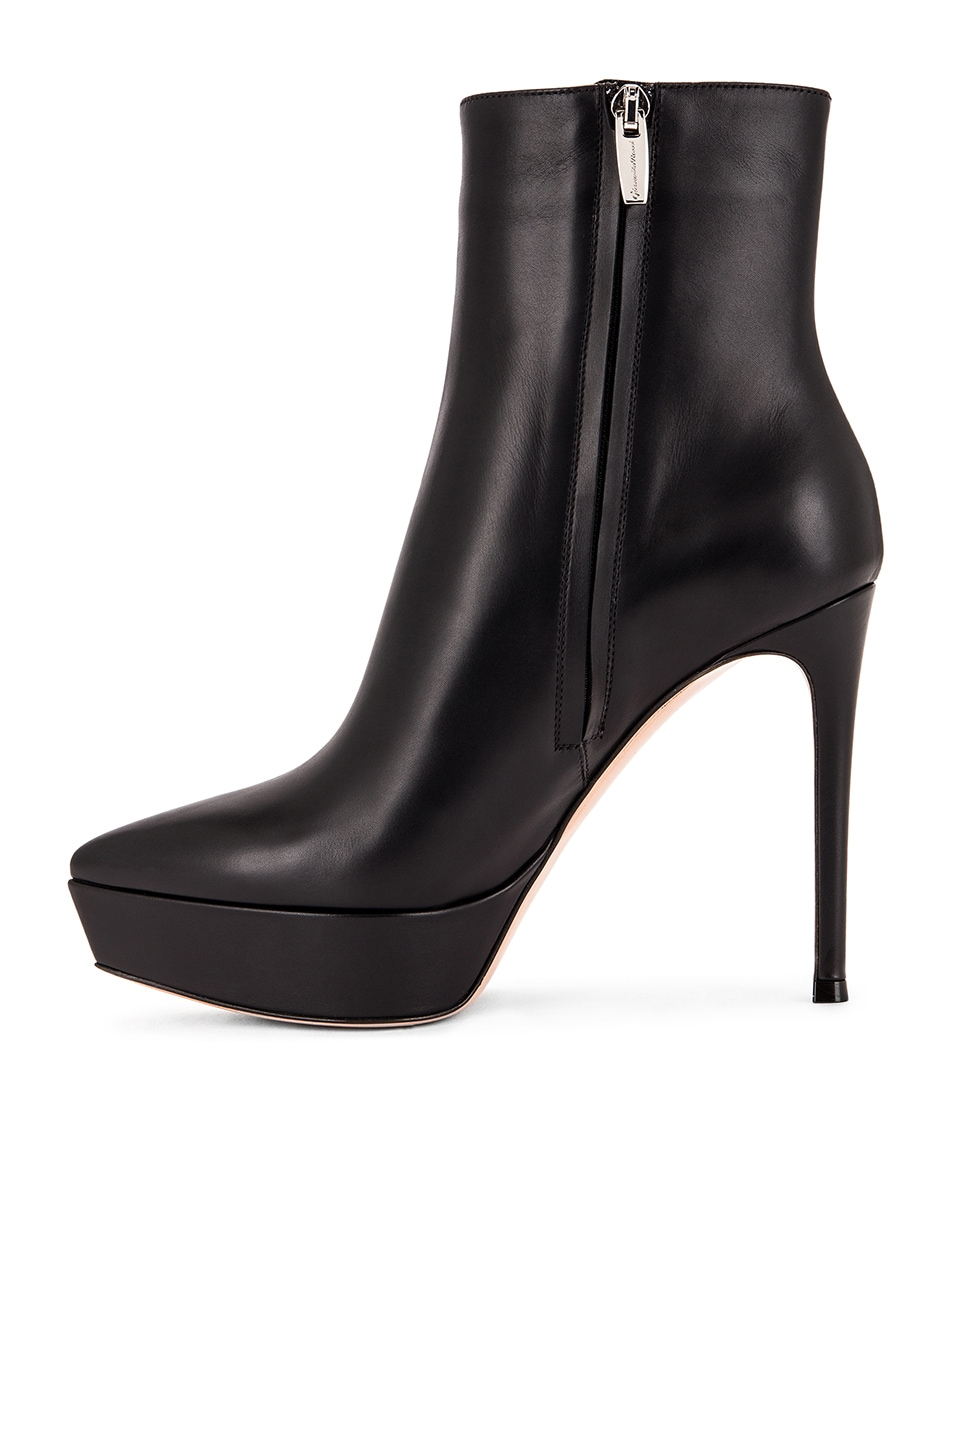 Image 5 of Gianvito Rossi Platform Ankle Booties in Black